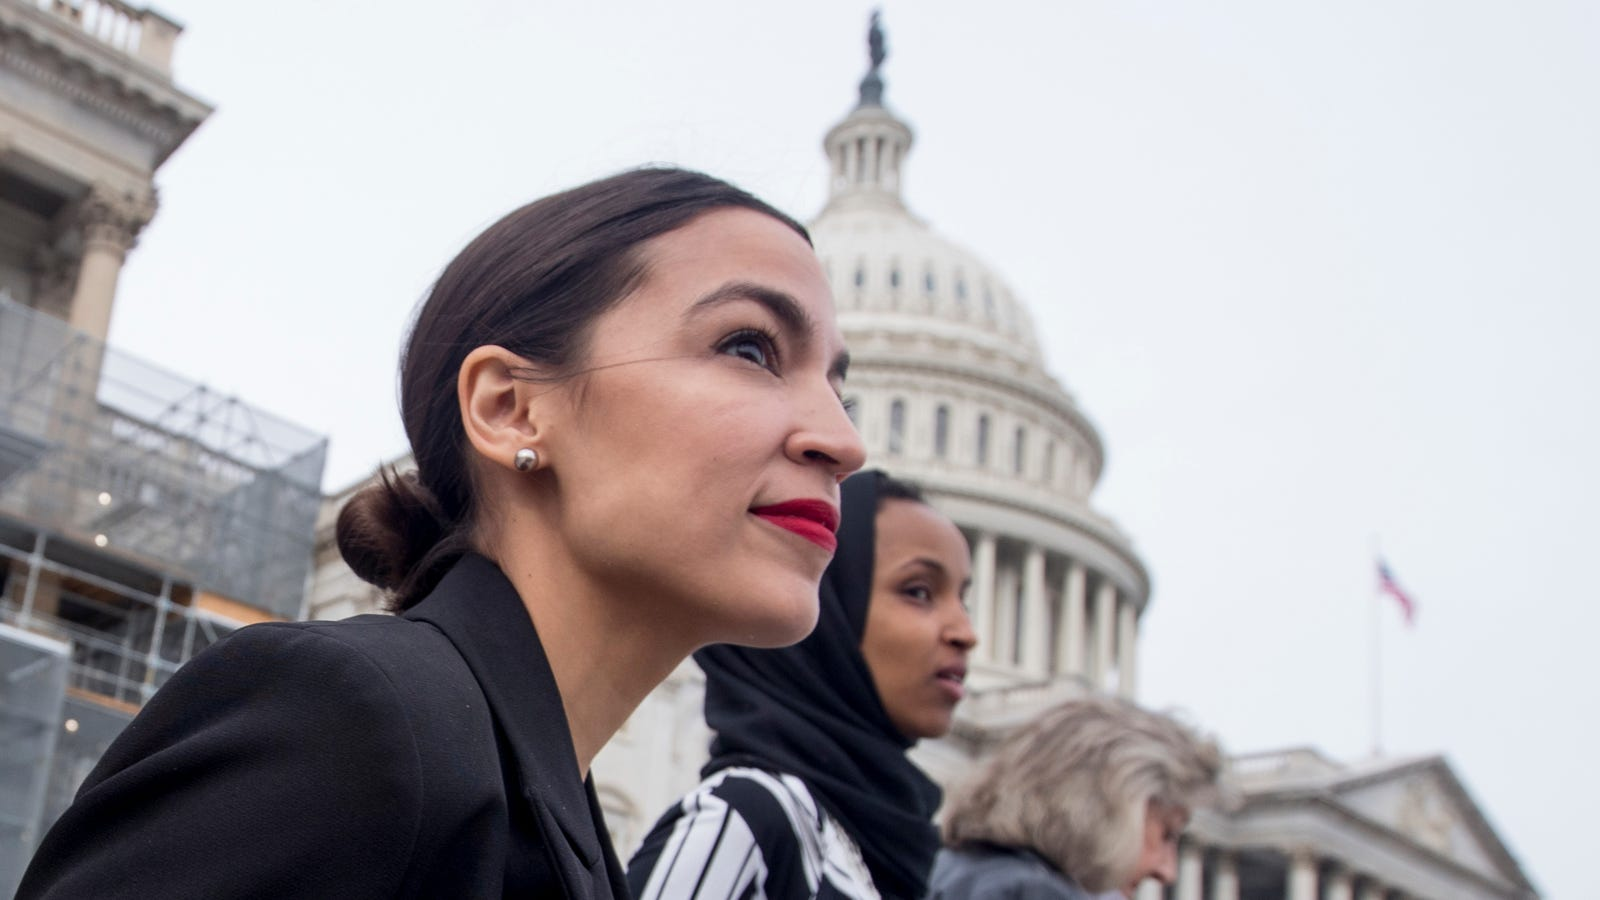 More Than 600 Environmental Groups Just Backed Ocasio-Cortez's Green New Deal